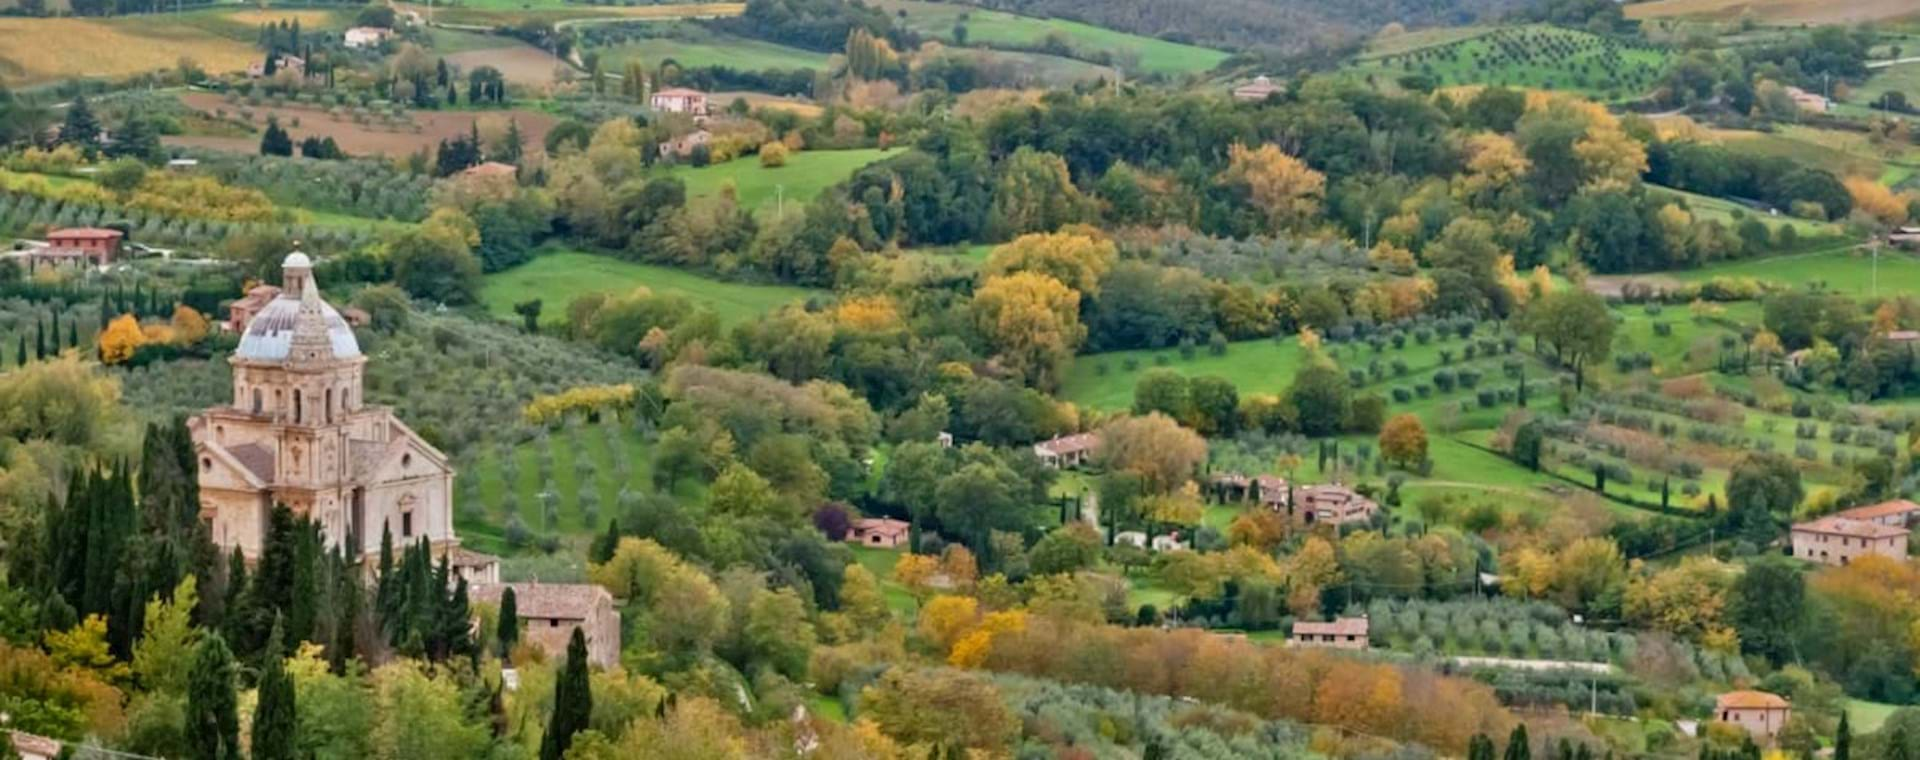 Tuscan-landscape-with-st-Biagio-church